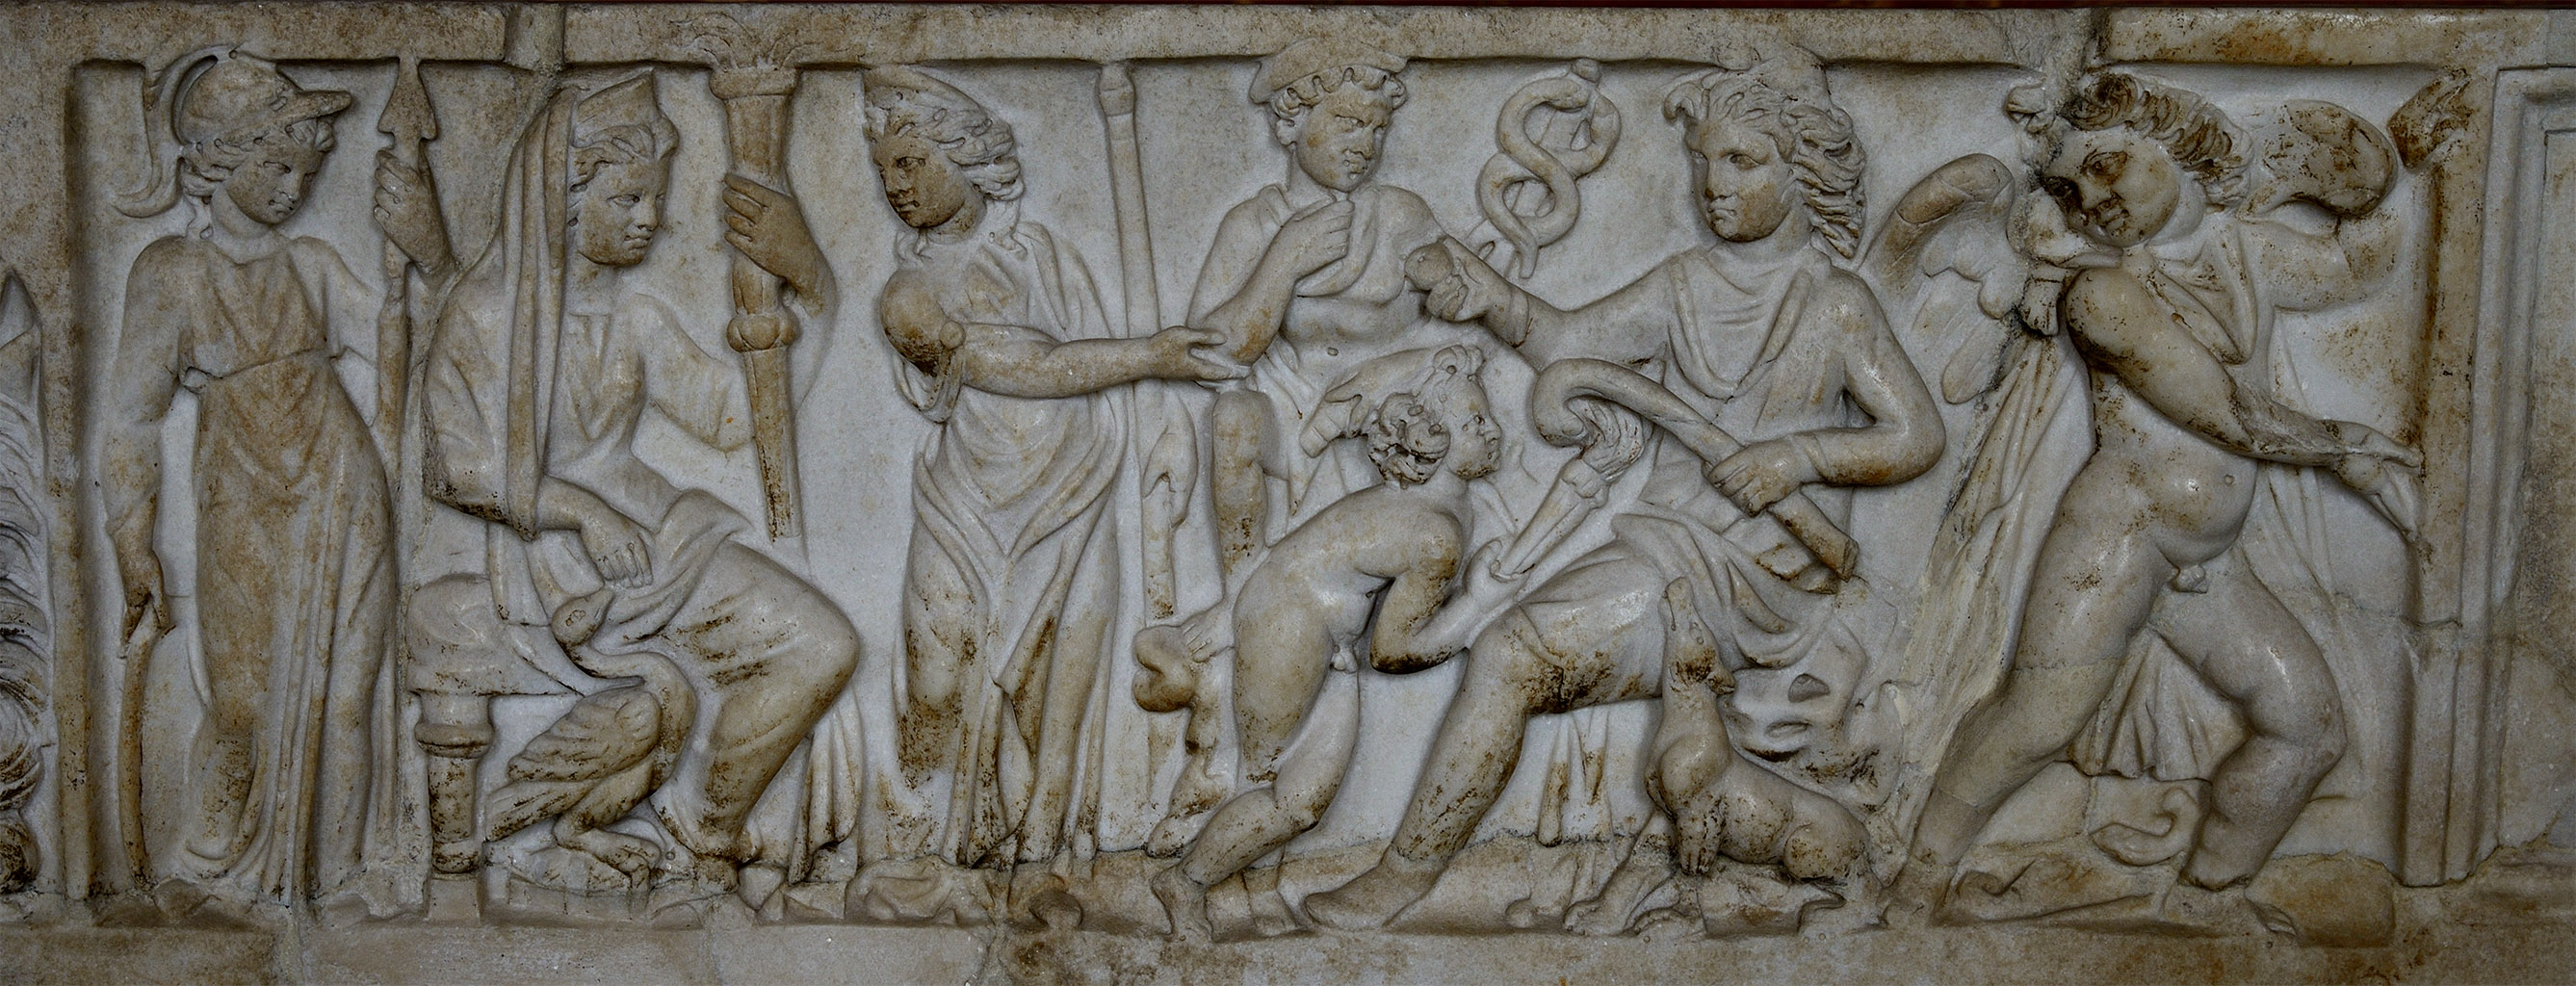 Judgement of Paris (a close-up of a lid of sarcophagus with a myth of Selene and Endymion). Marble. Ca. 235 CE. Inv. No. Ma 1335. Paris, Louvre Museum